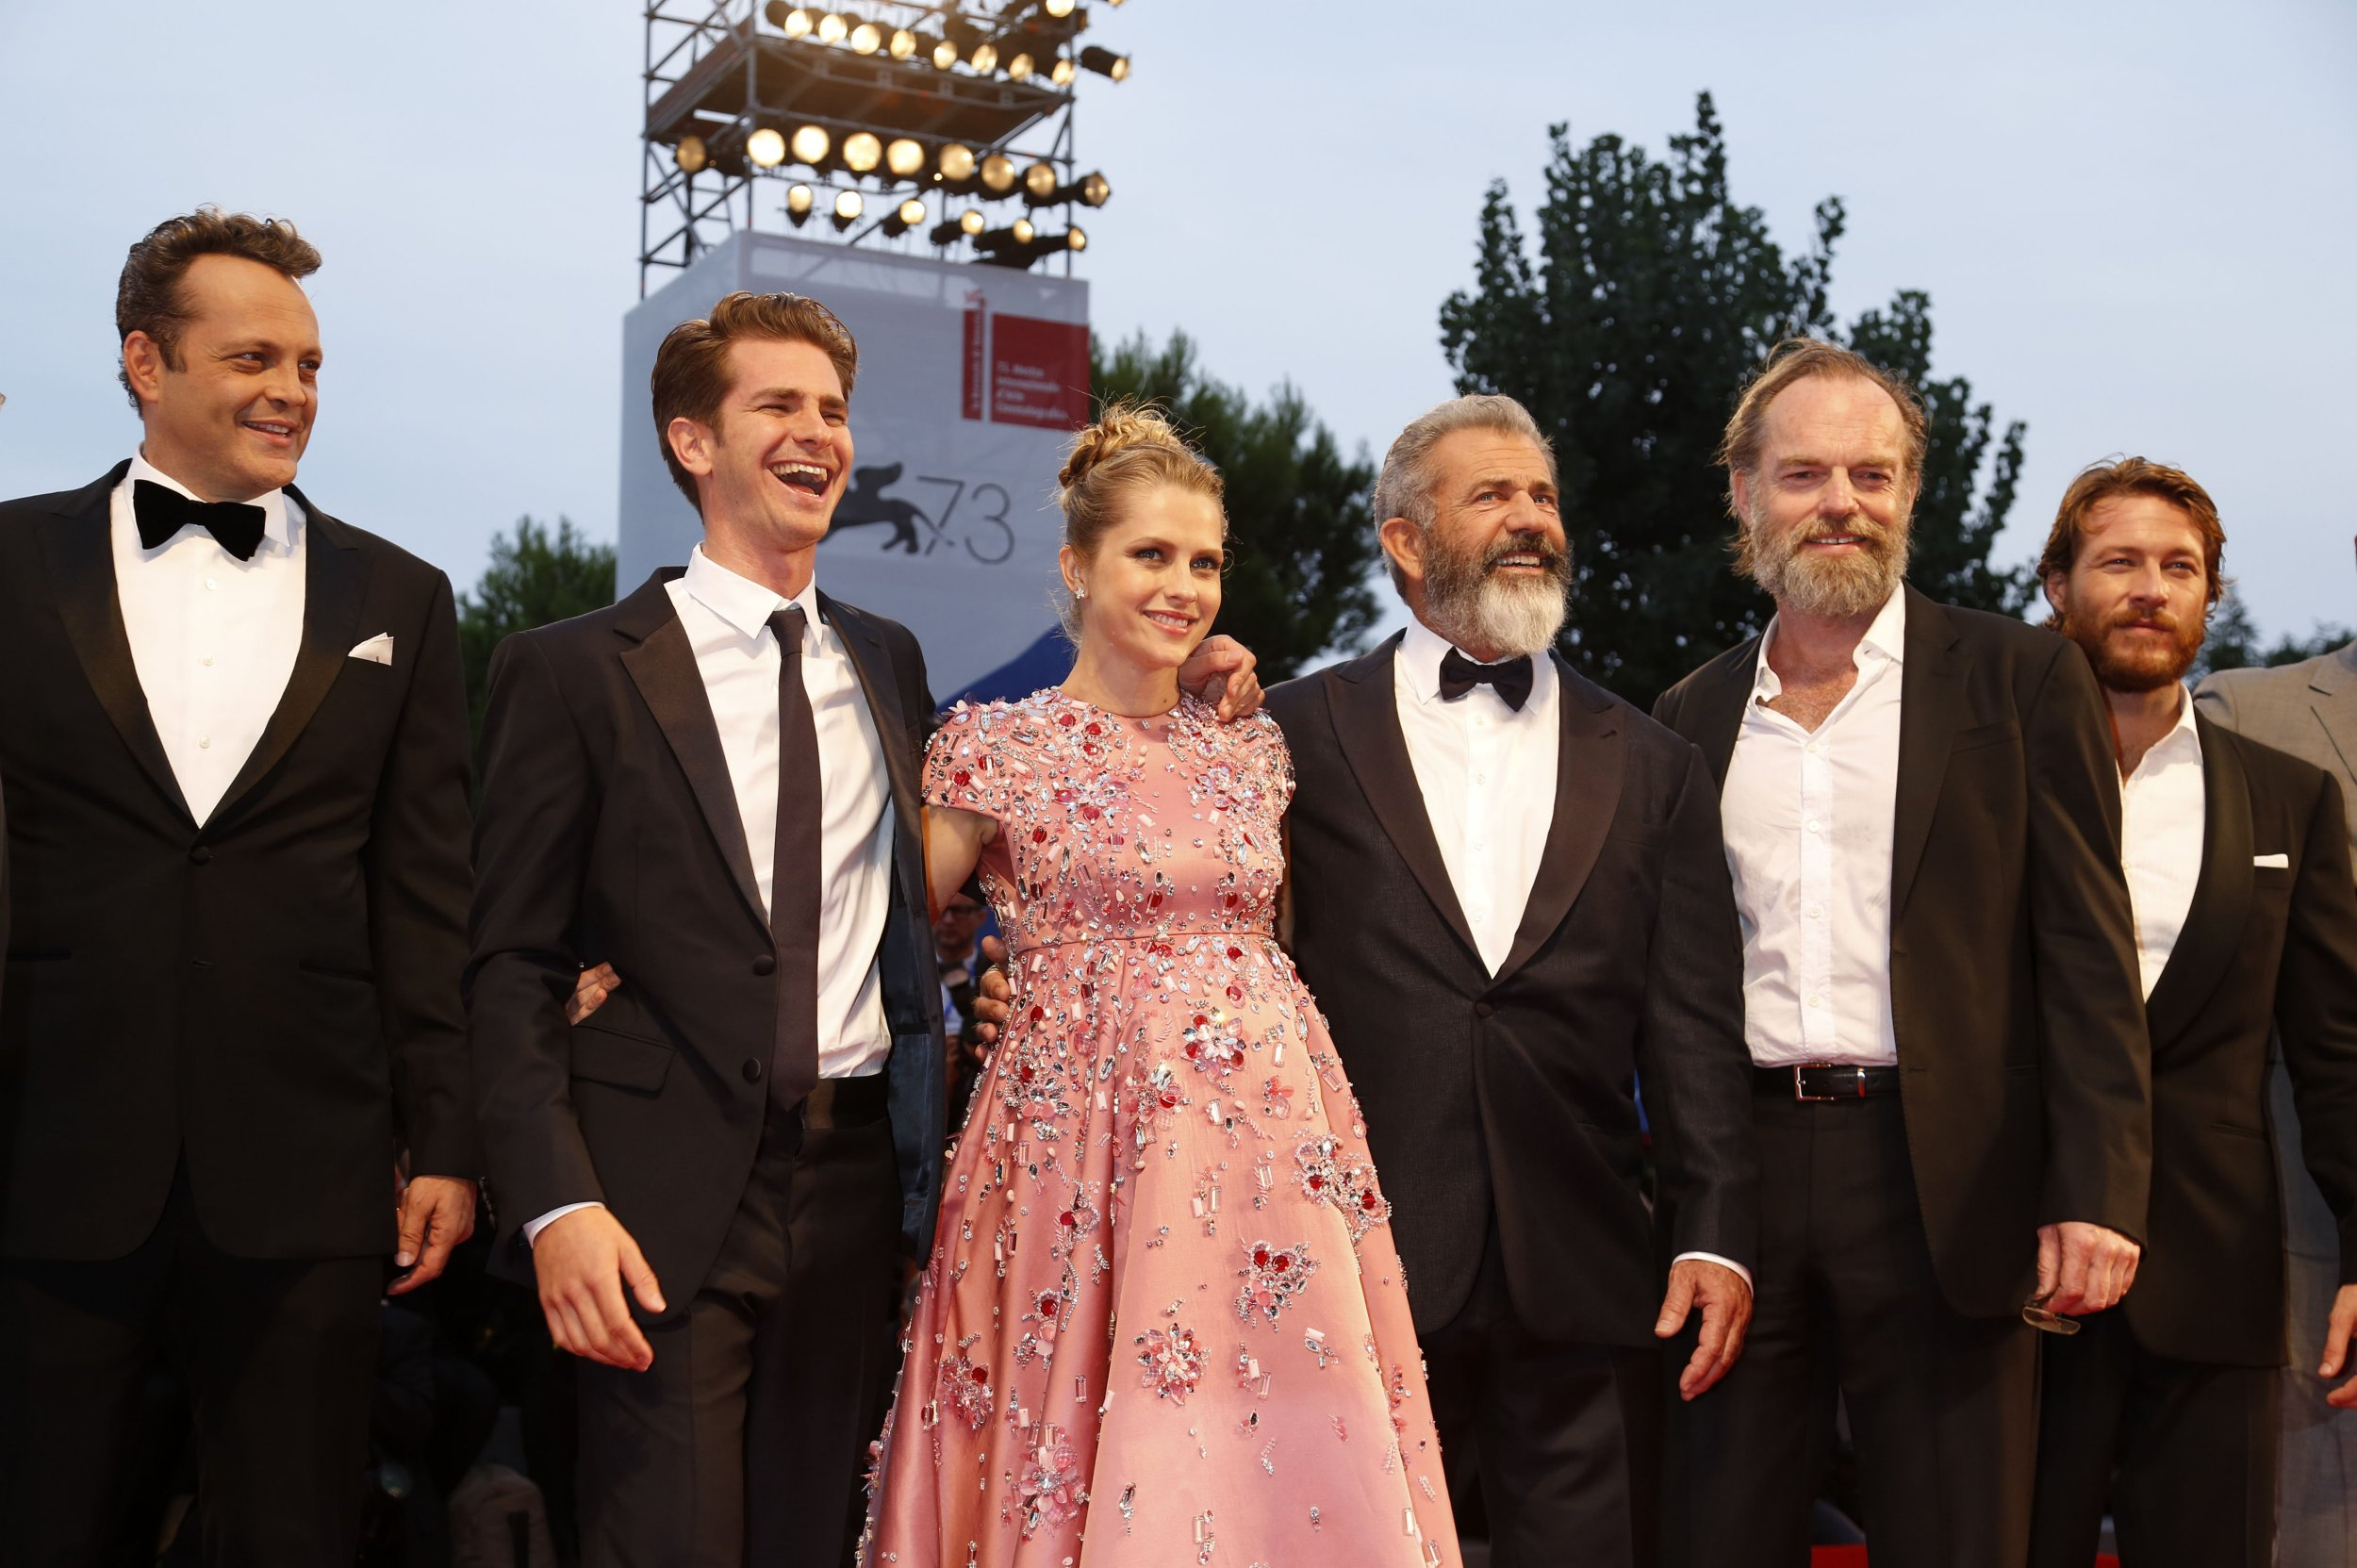 Mel Gibson's comeback movie Hacksaw Ridge gets 10 minute standing ovation and talk of Best Director Oscar